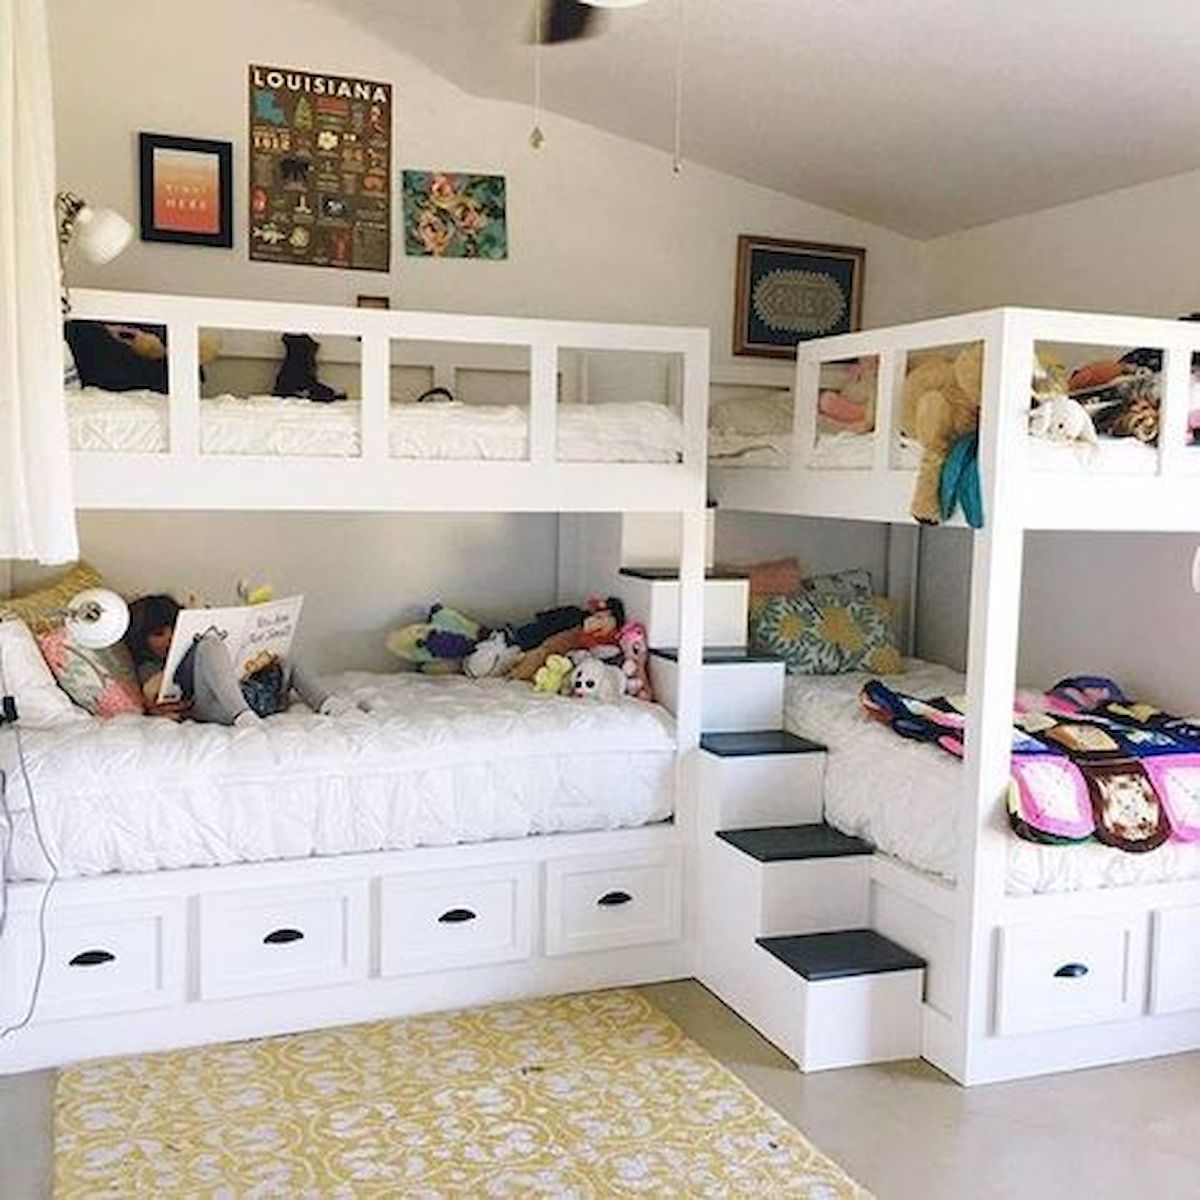 The Best Bunk Beds For Kids' Rooms https//carrebianhome